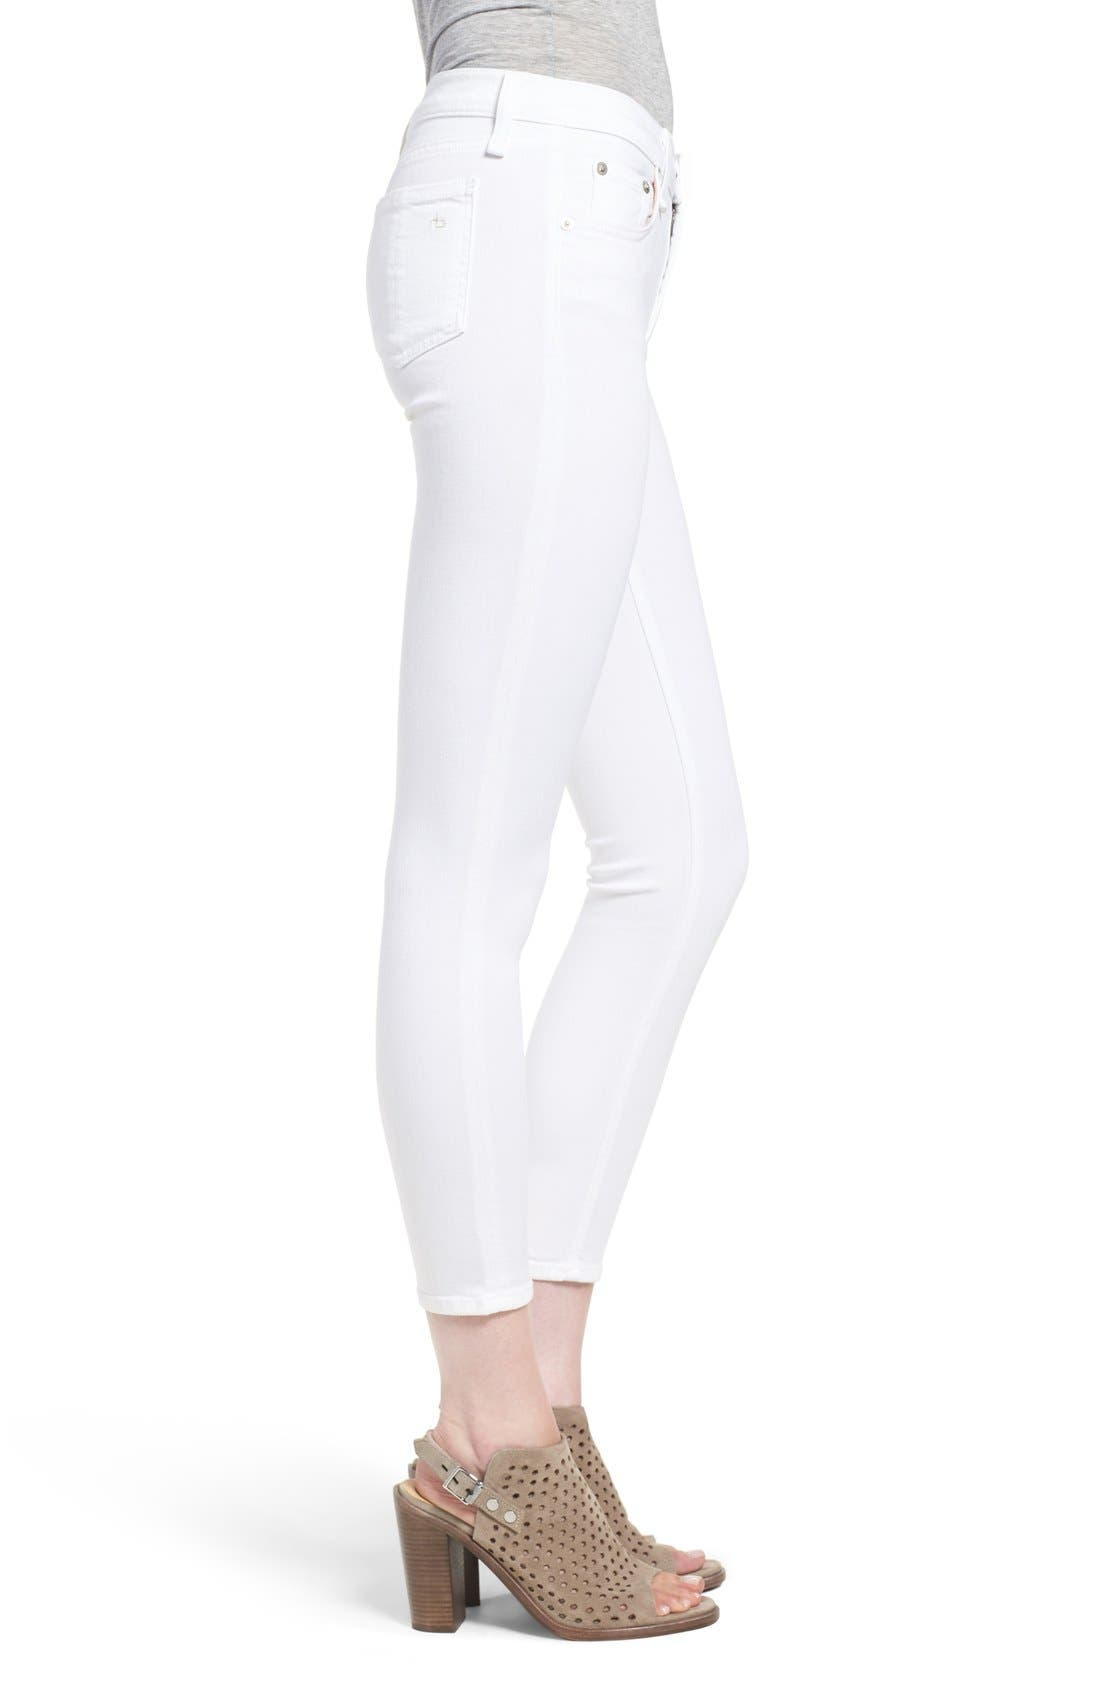 'Capri' Skinny Crop Jeans,                             Alternate thumbnail 2, color,